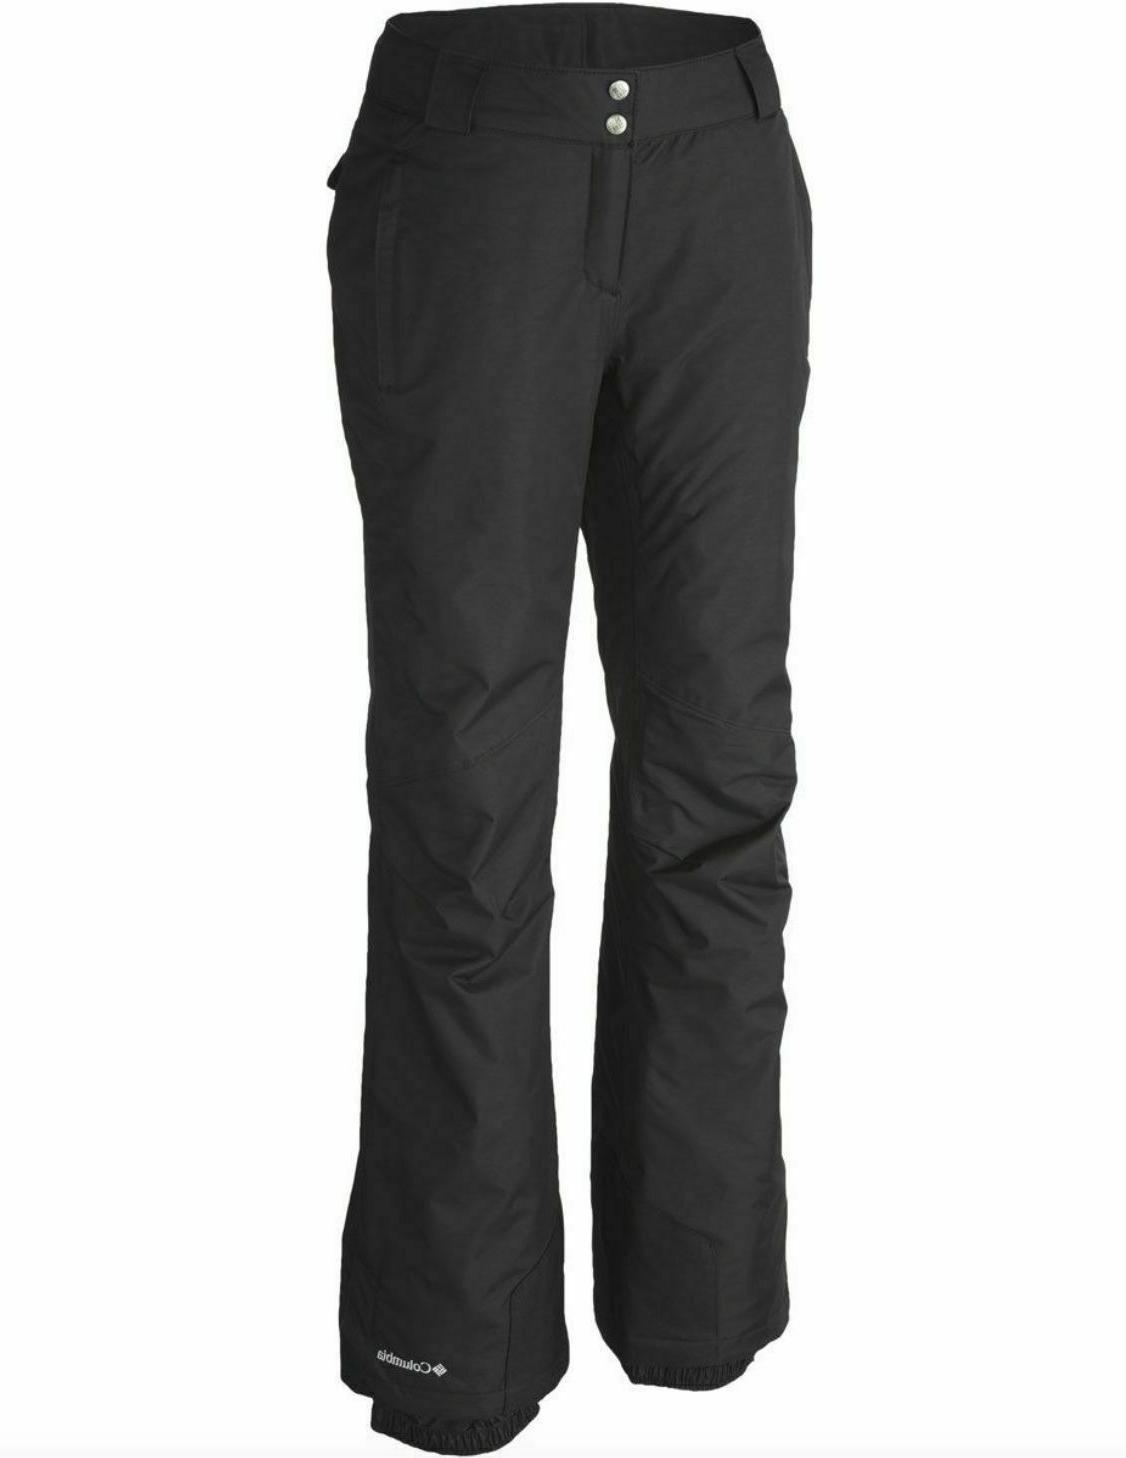 New Columbia Arctic Trip Womens Insulated Omni Tech Snow Pan